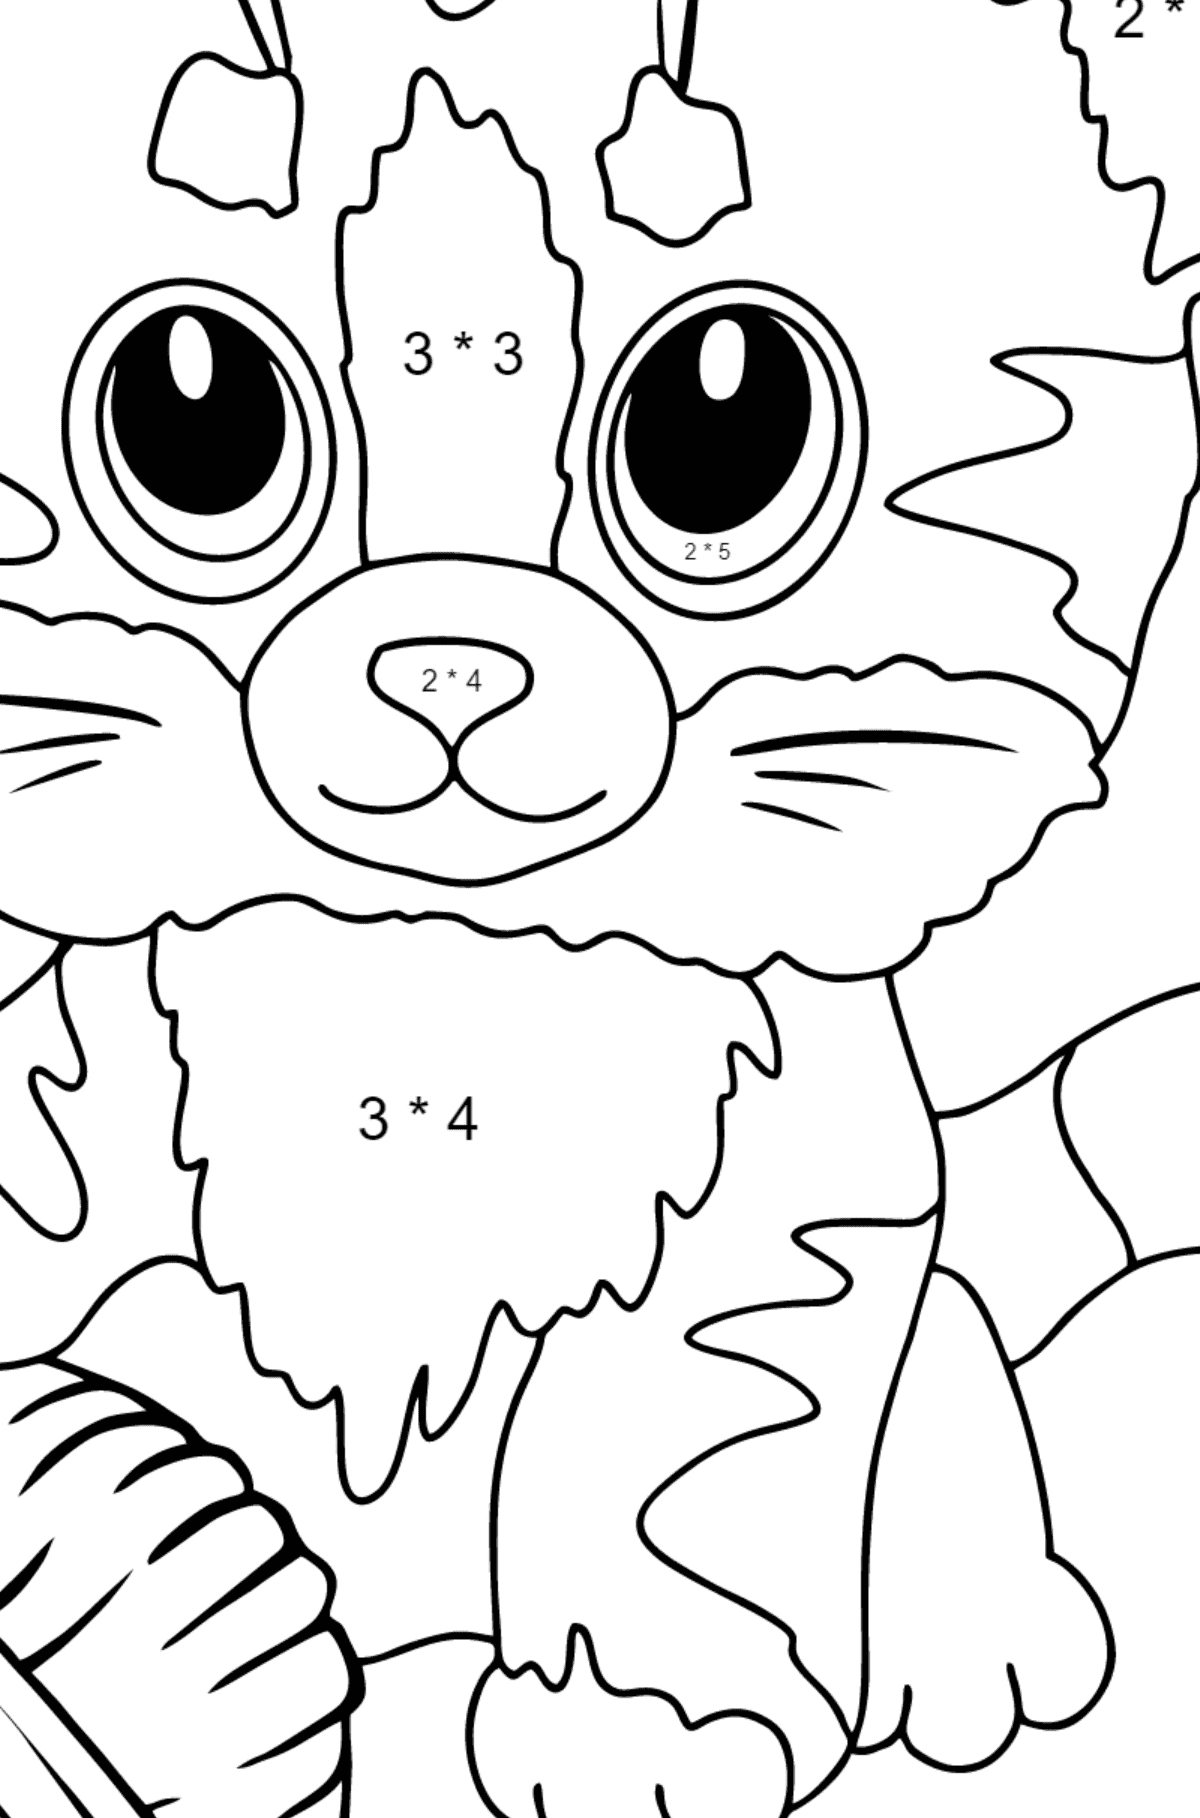 Coloring Page - a Kitten has Caught a Ball of Yarn - Math Coloring - Multiplication for Children